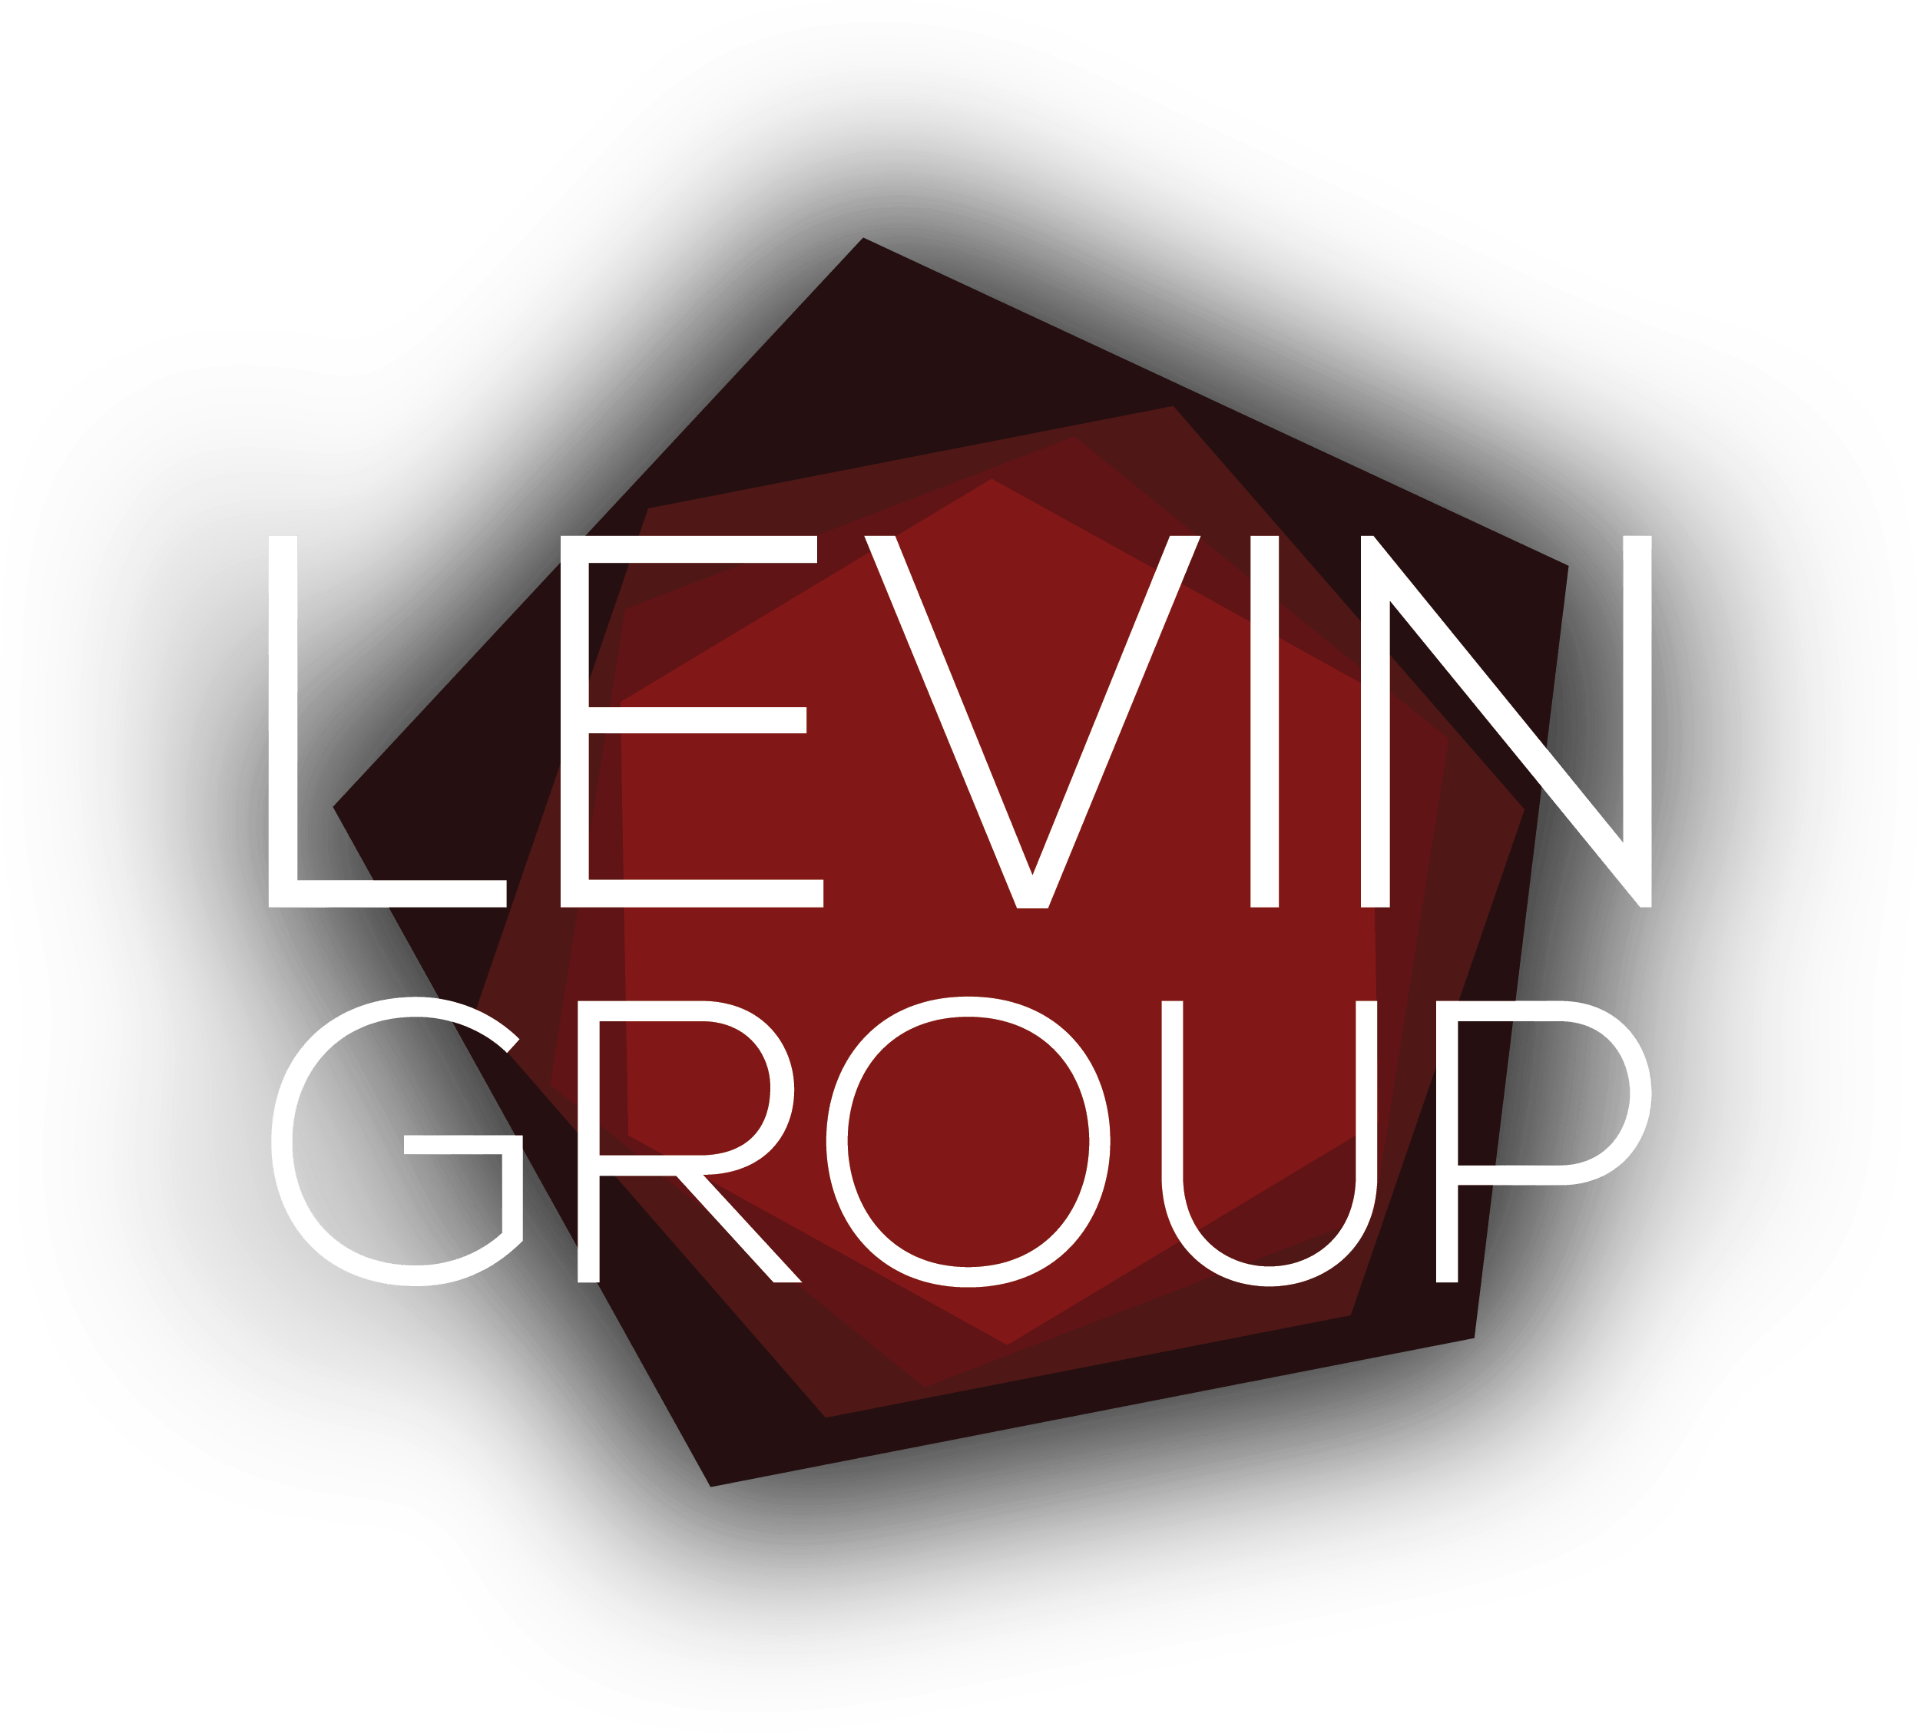 The Levin Group